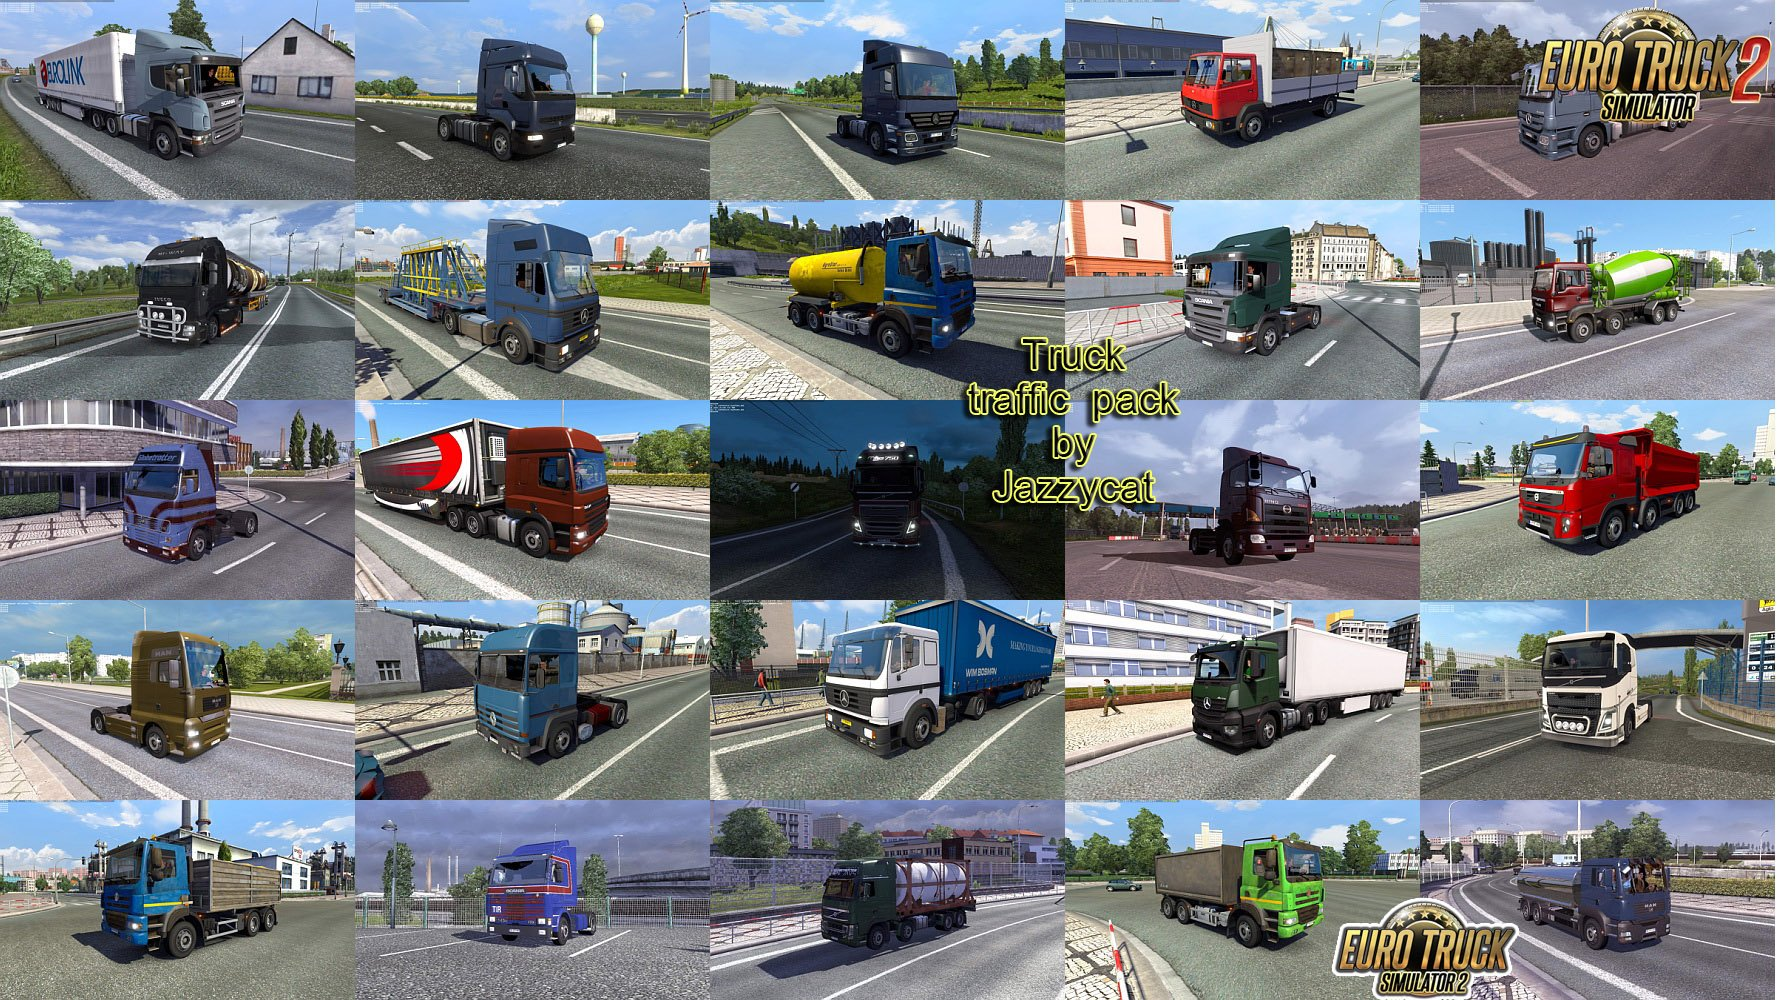 Truck Traffic Pack v3.1.2 by Jazzycat